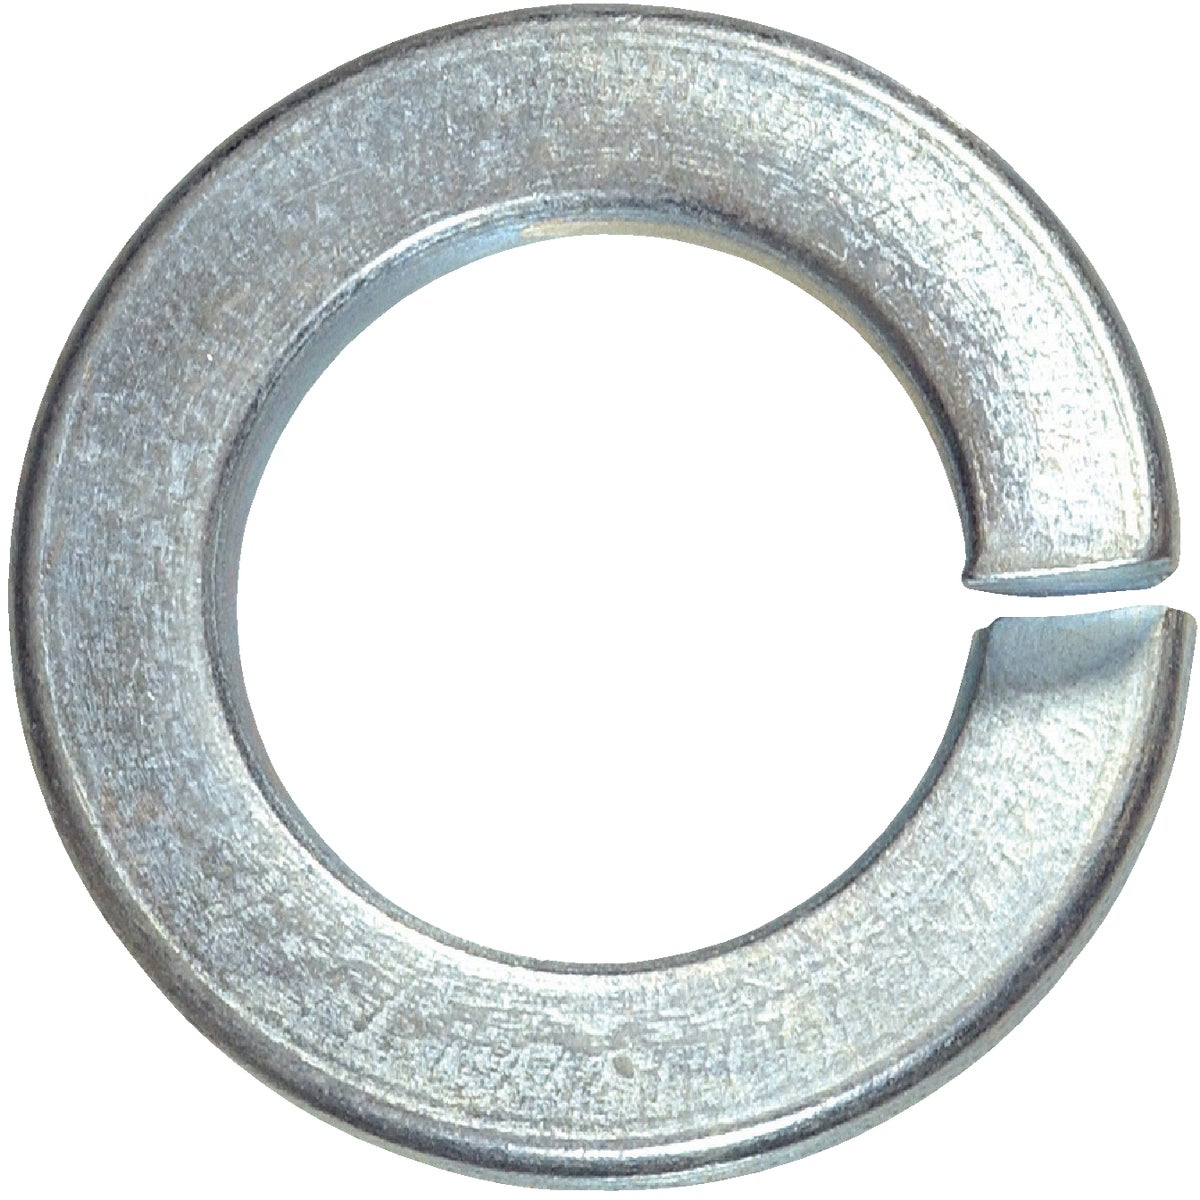 "50PC 7/16"" LOCK WASHER - 300027 by Hillman Fastener"